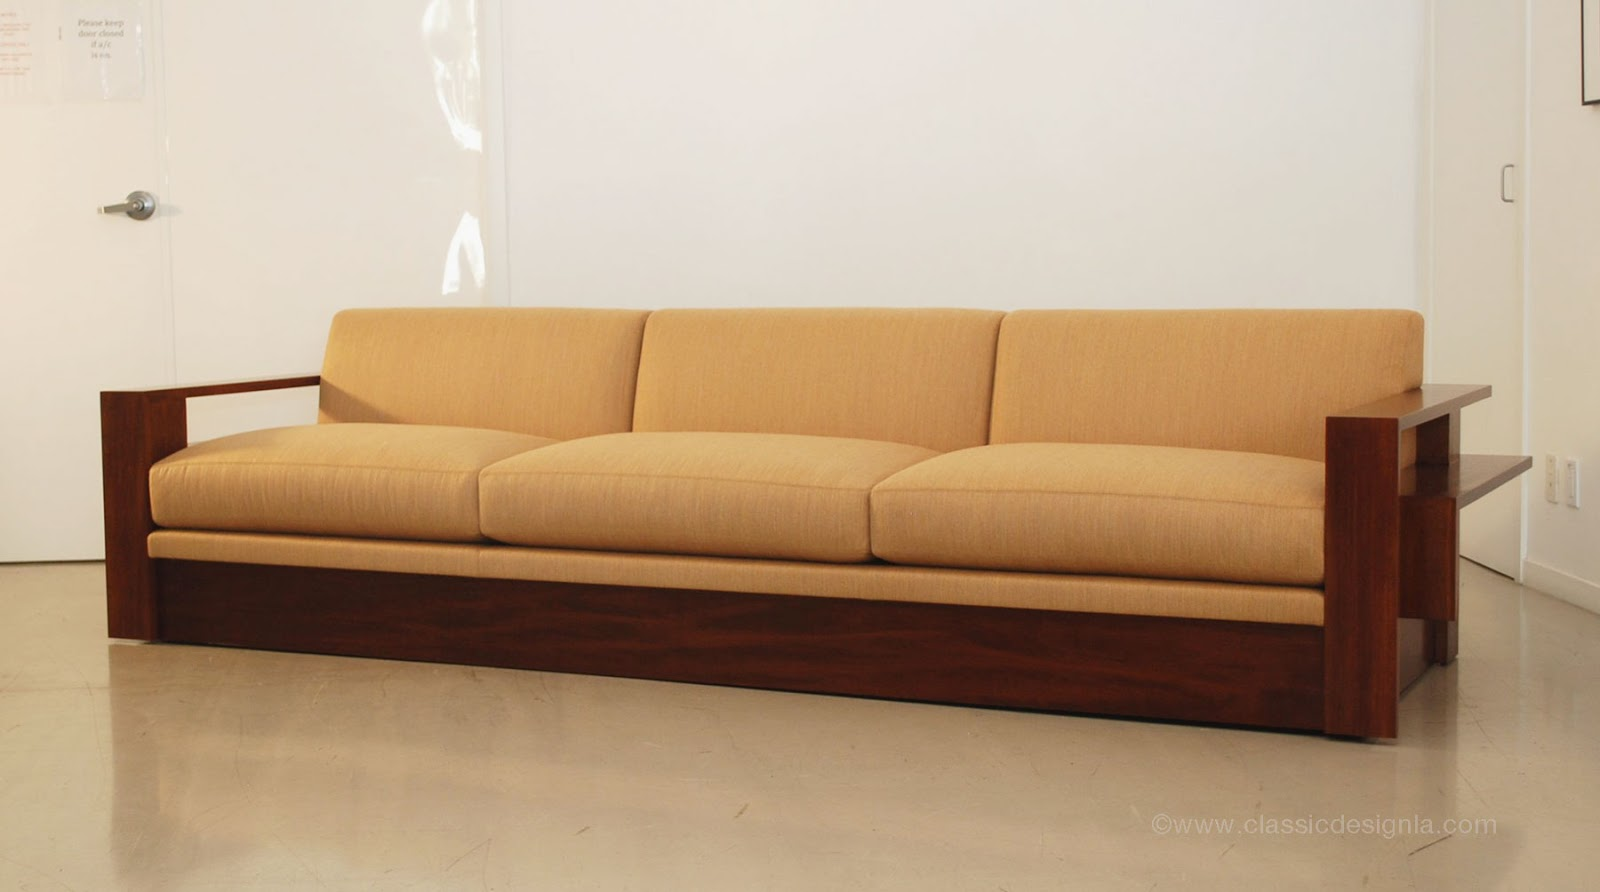 classic design: Custom Wood Frame Sofa